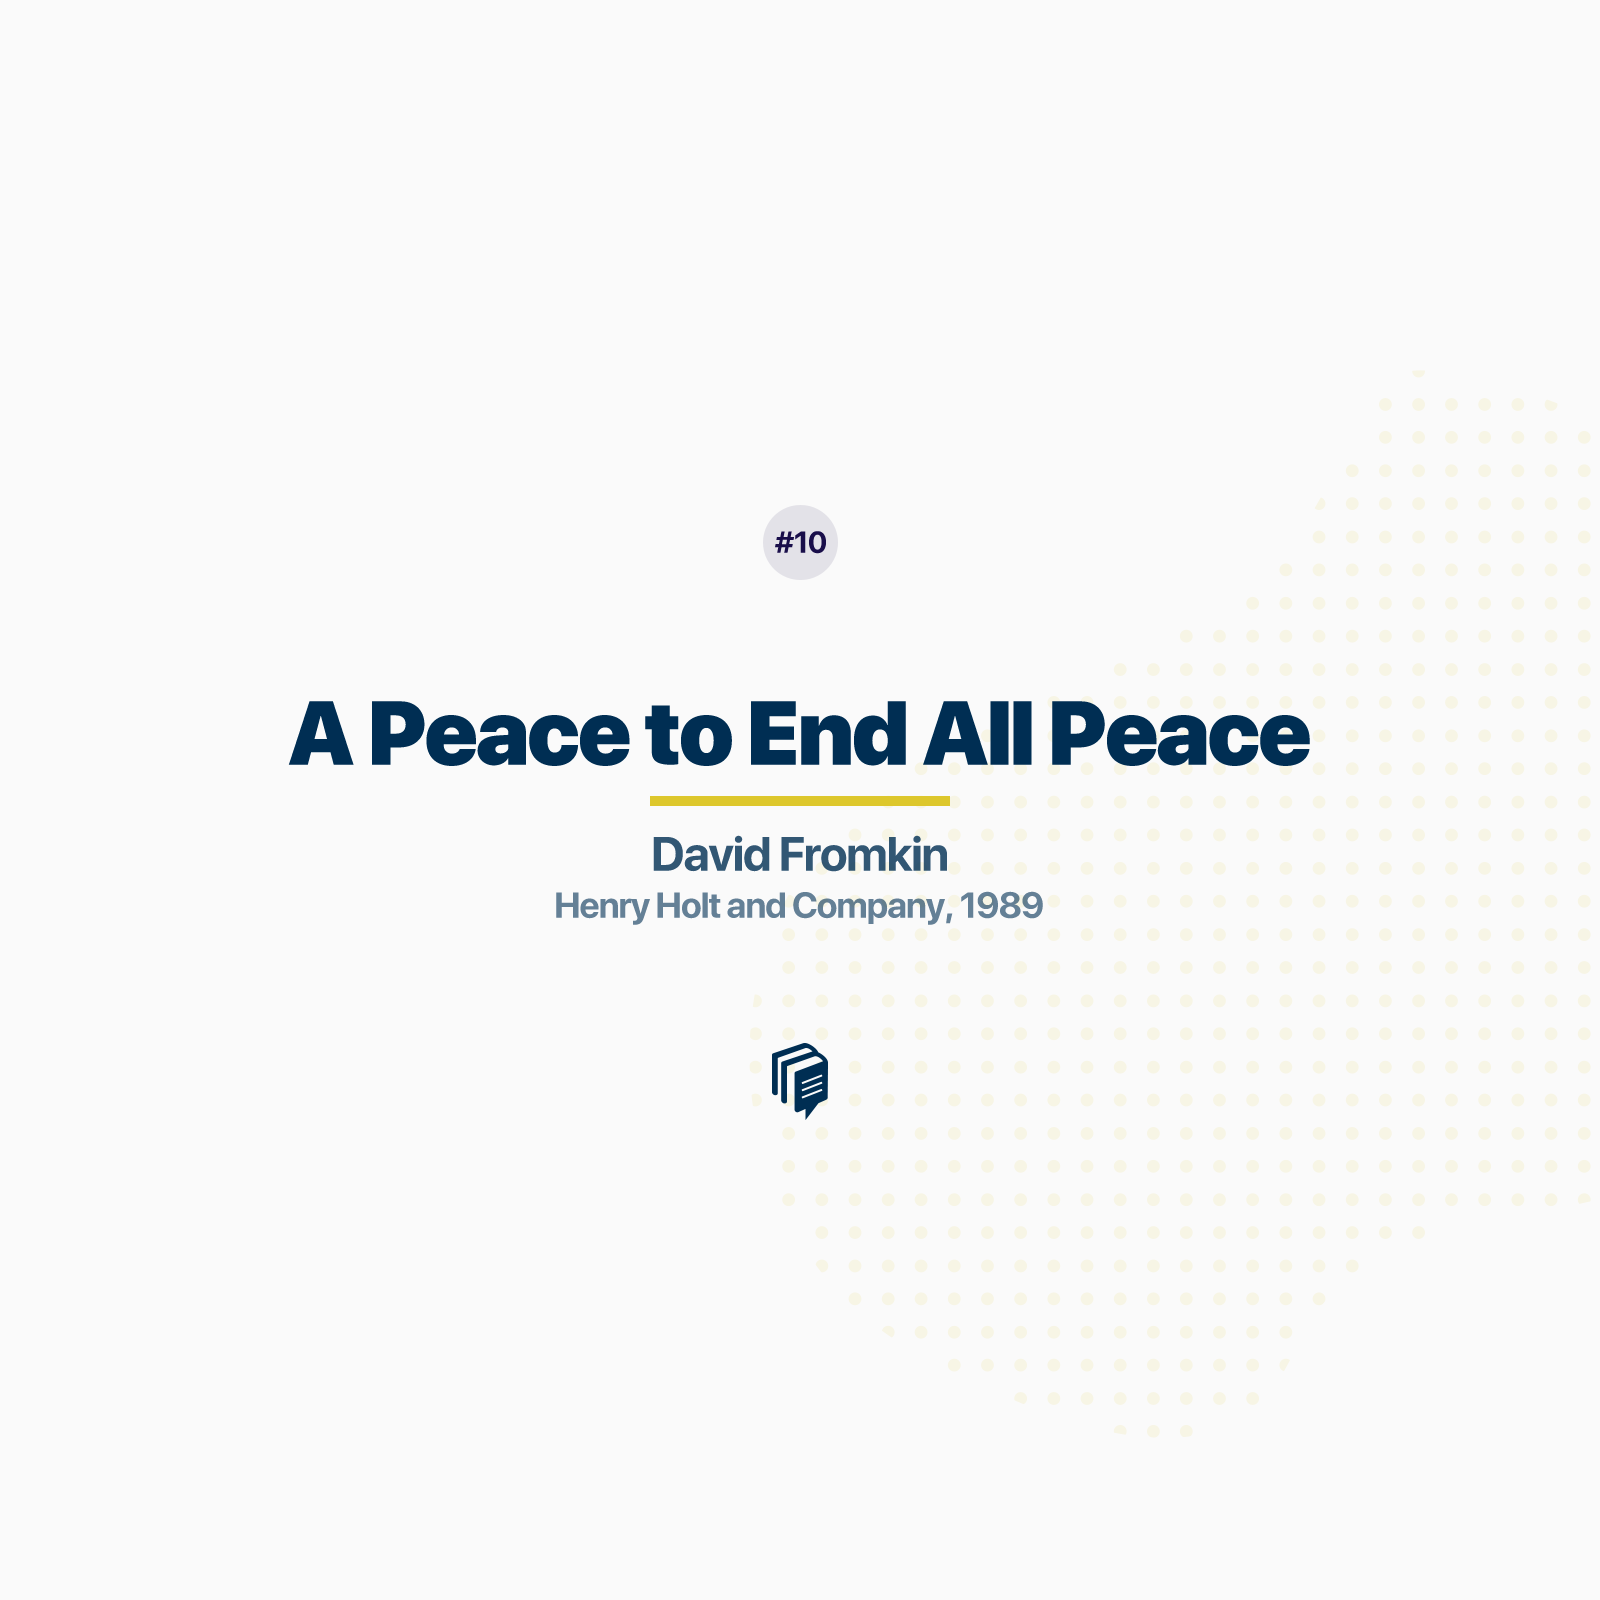 10: A peace to end all peaces